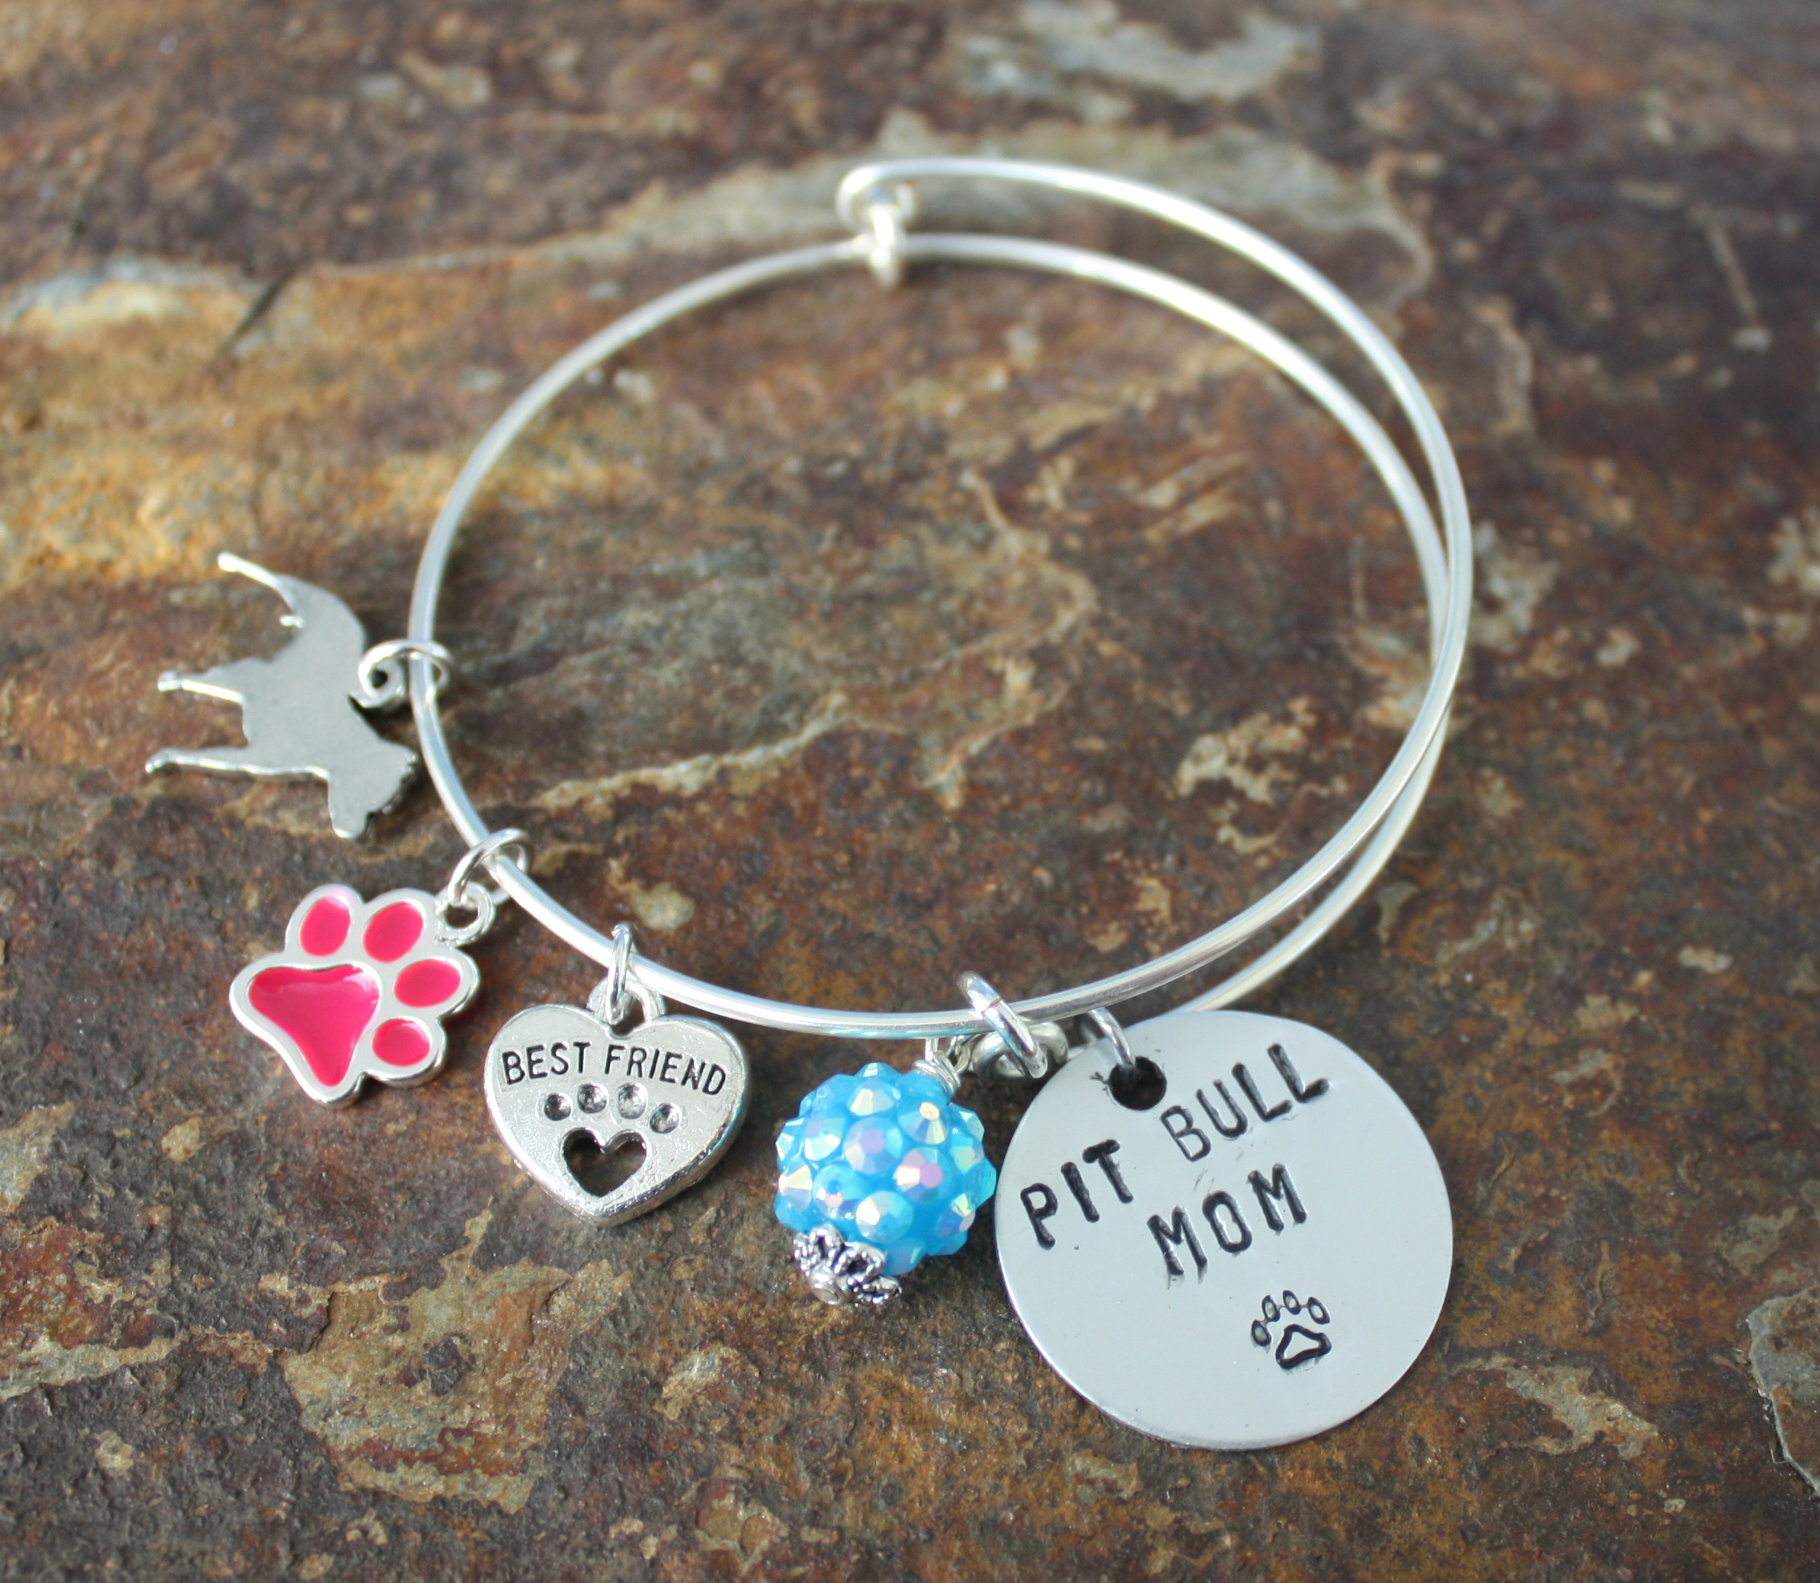 animal mom charm alex her bangles gift for ani personalized and name product dog hugerect hand bracelet lover stamped inspired bangle